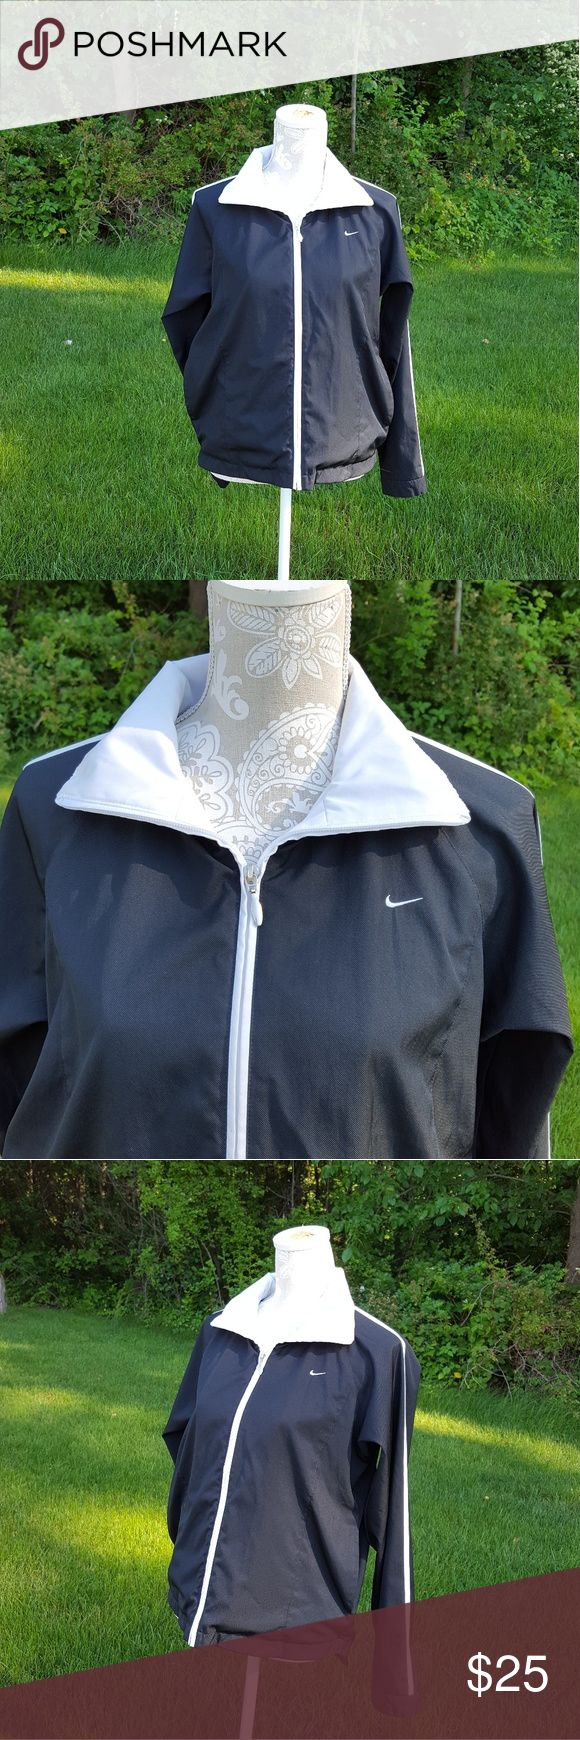 Nike Black and white zip up track jacket Has been worn Size medium Zip up Wind breaker material  Long sleeves Collared  No Trades Nike Jackets & Coats